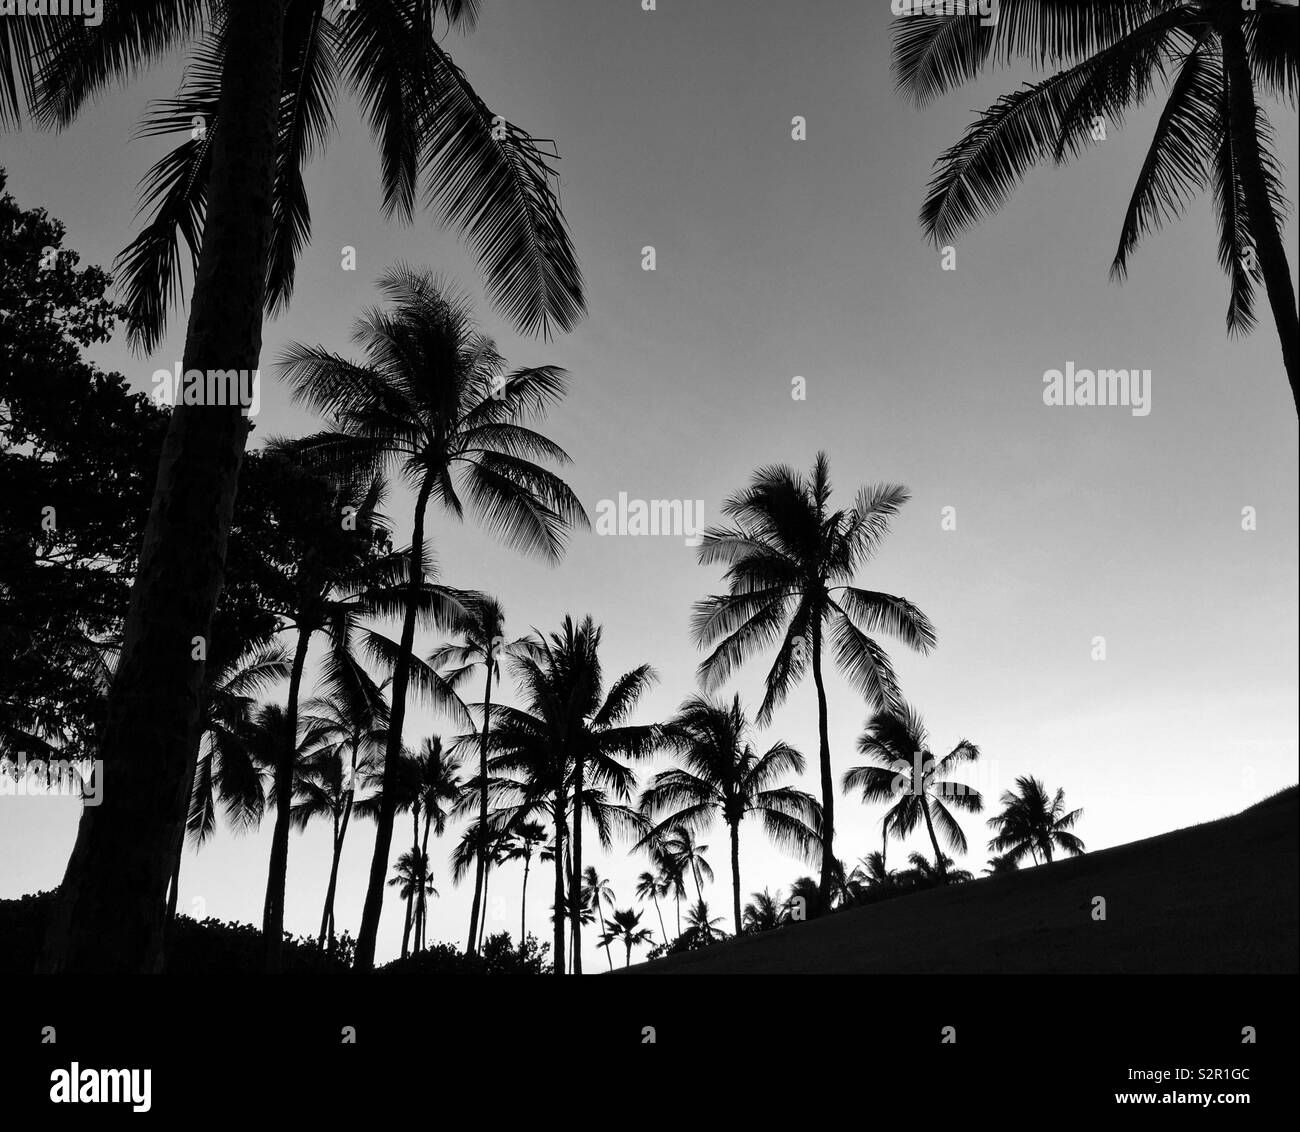 Grove of coconut Palm trees in black and white Stock Photo